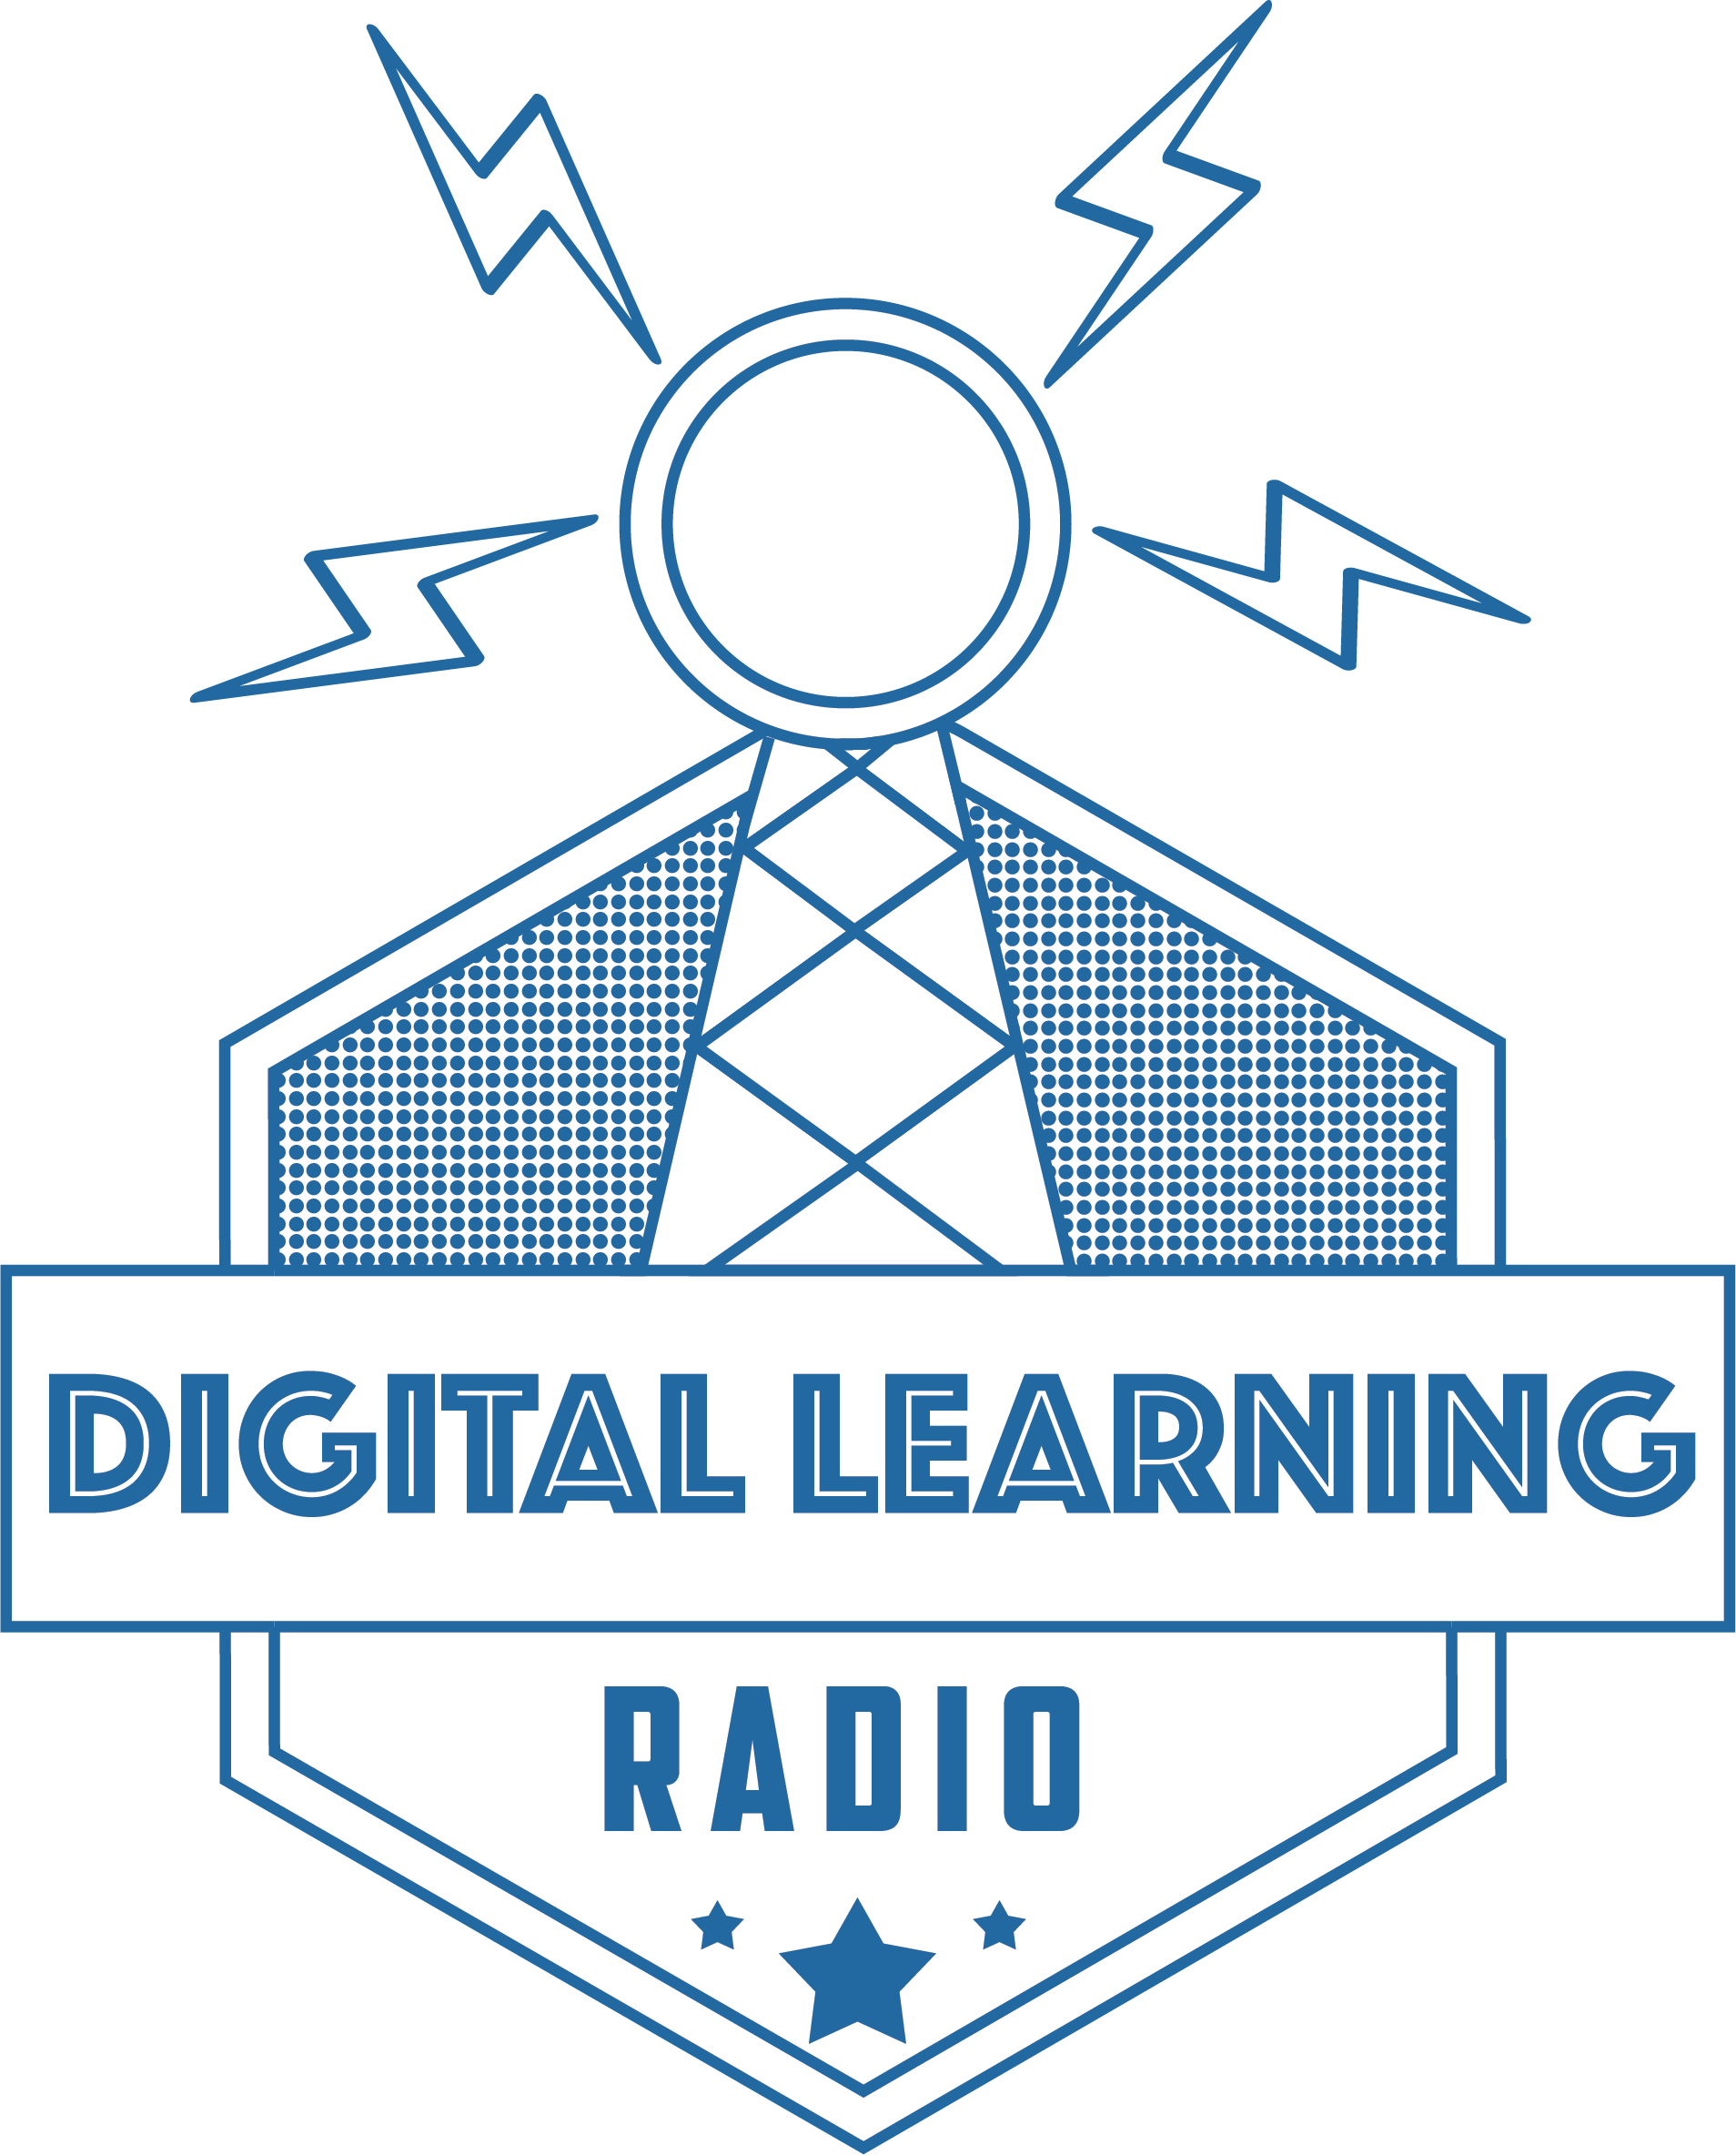 Digital Learning Radio logo